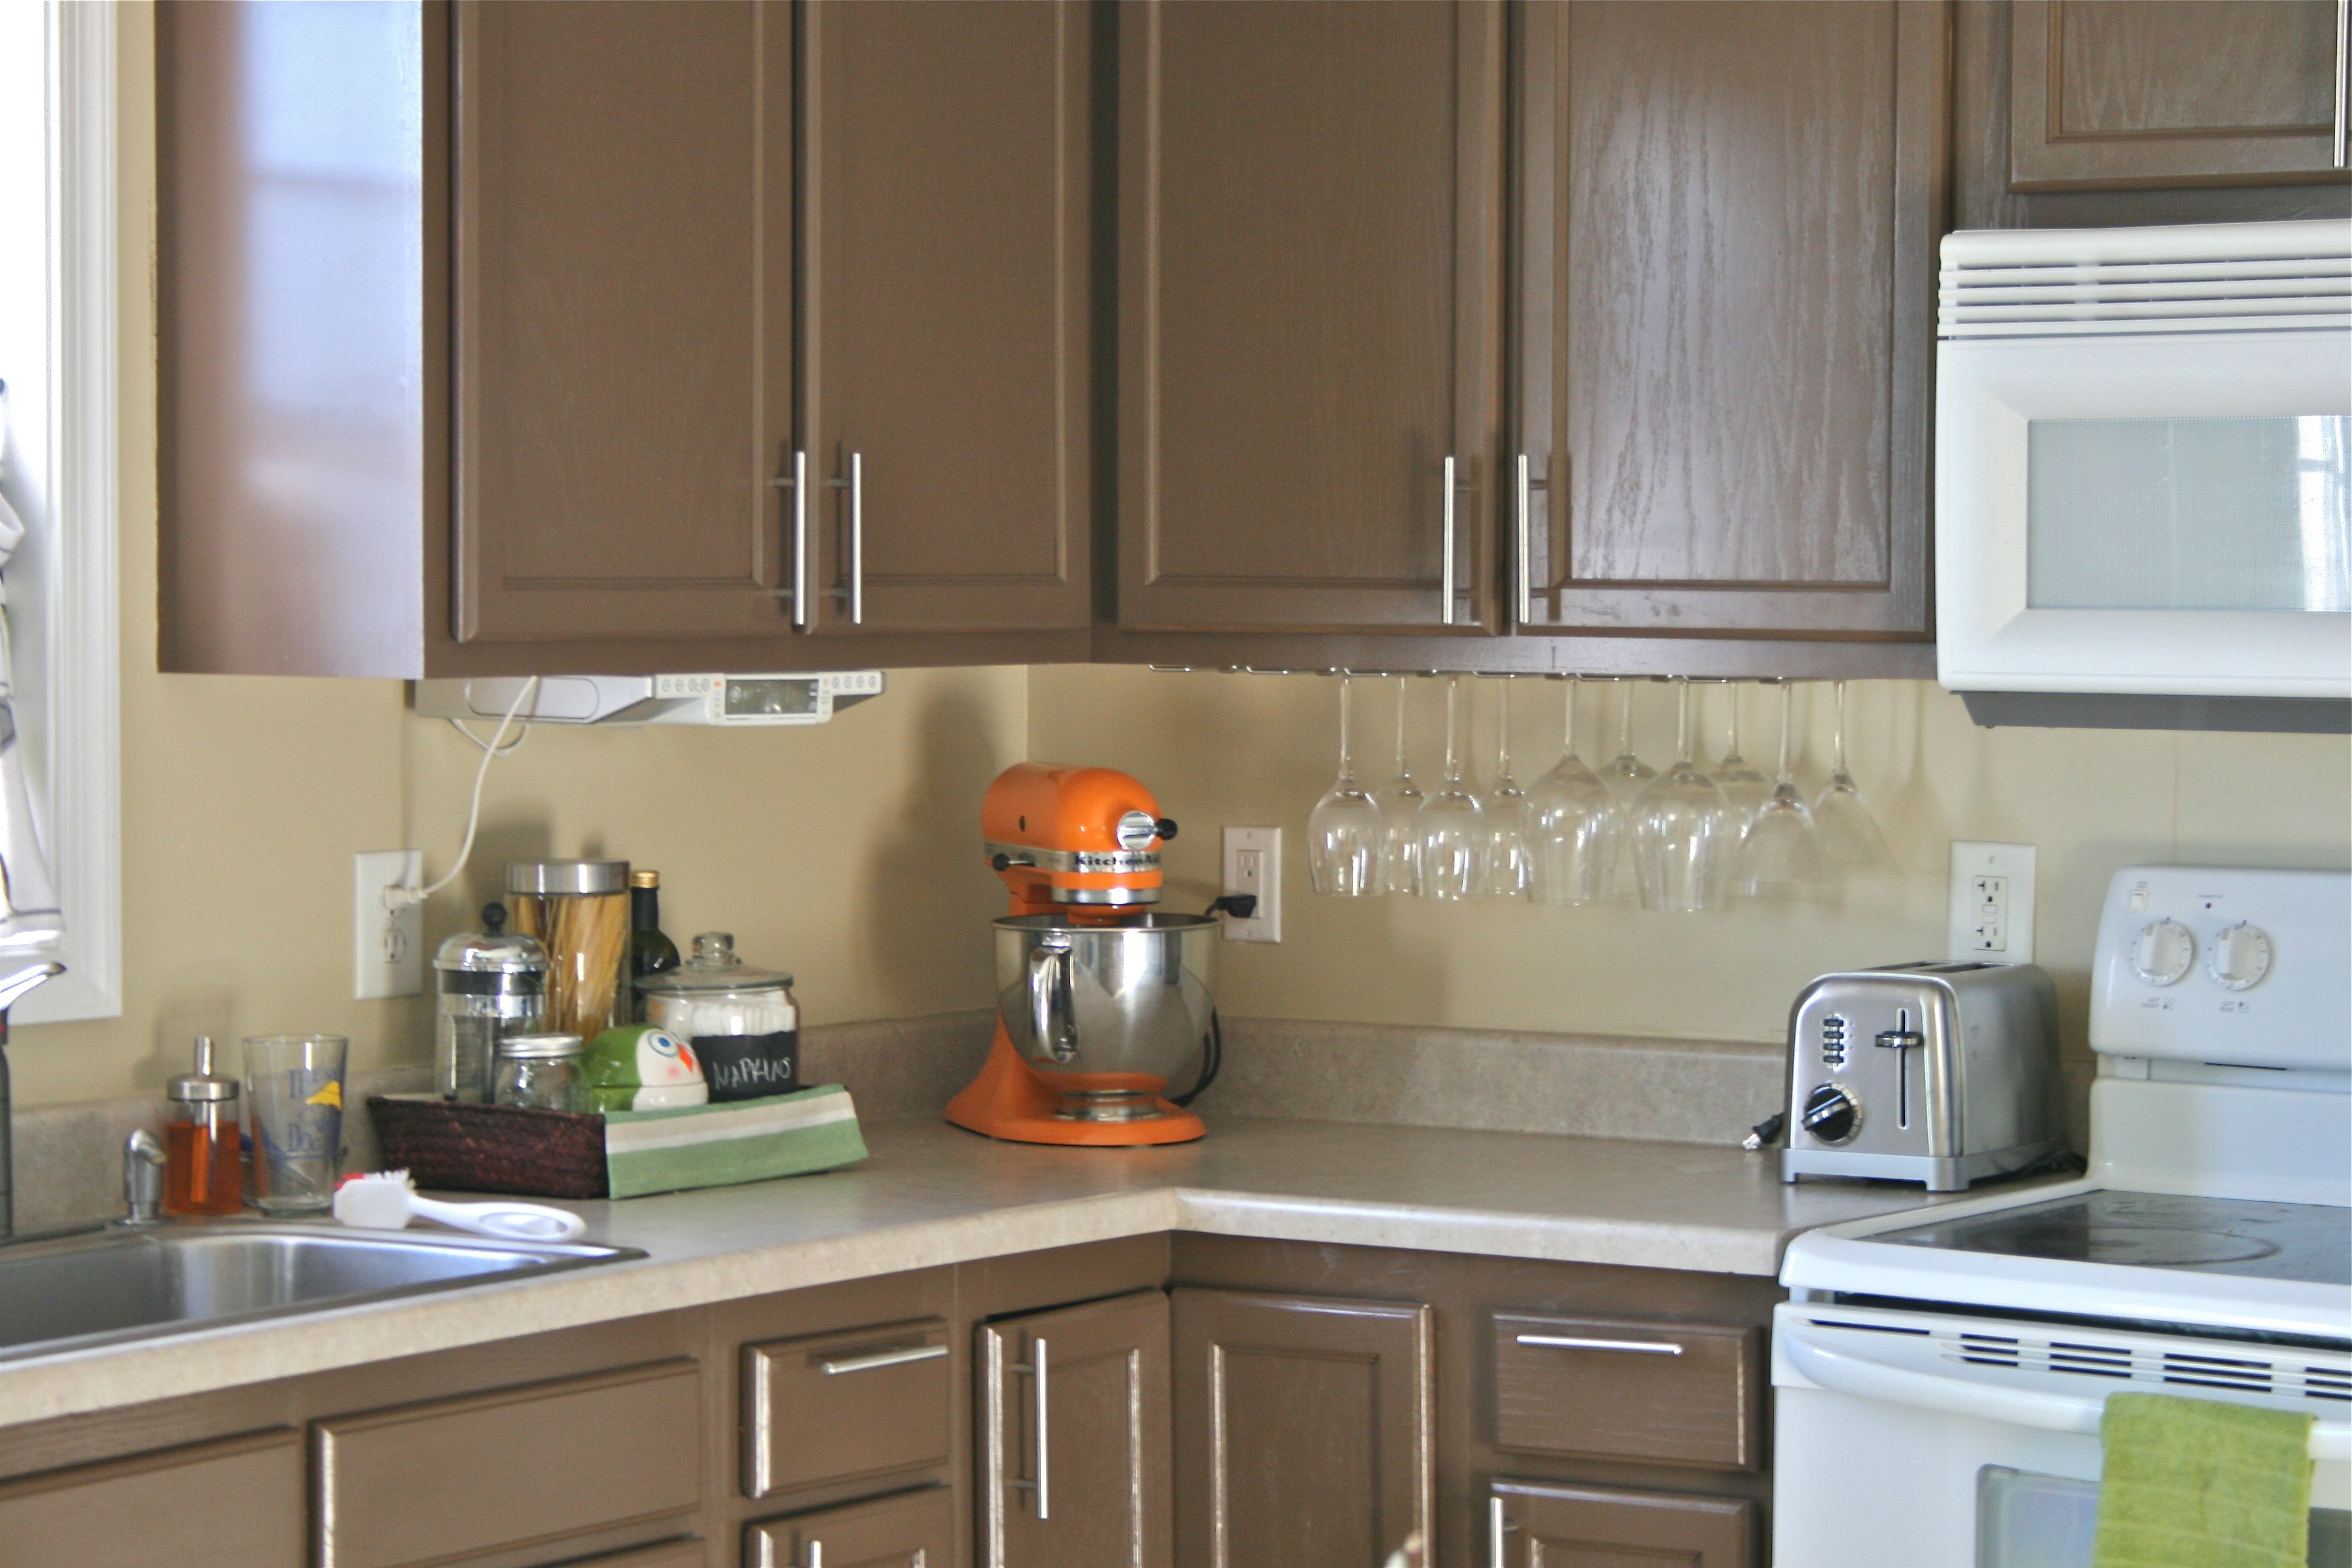 Pinspiration monday faux tile backsplash dream green diy first i rolled on two thin coats of primer the same can we used on the cabinets at the beginning of the year in my head i thought that the under layer dailygadgetfo Gallery